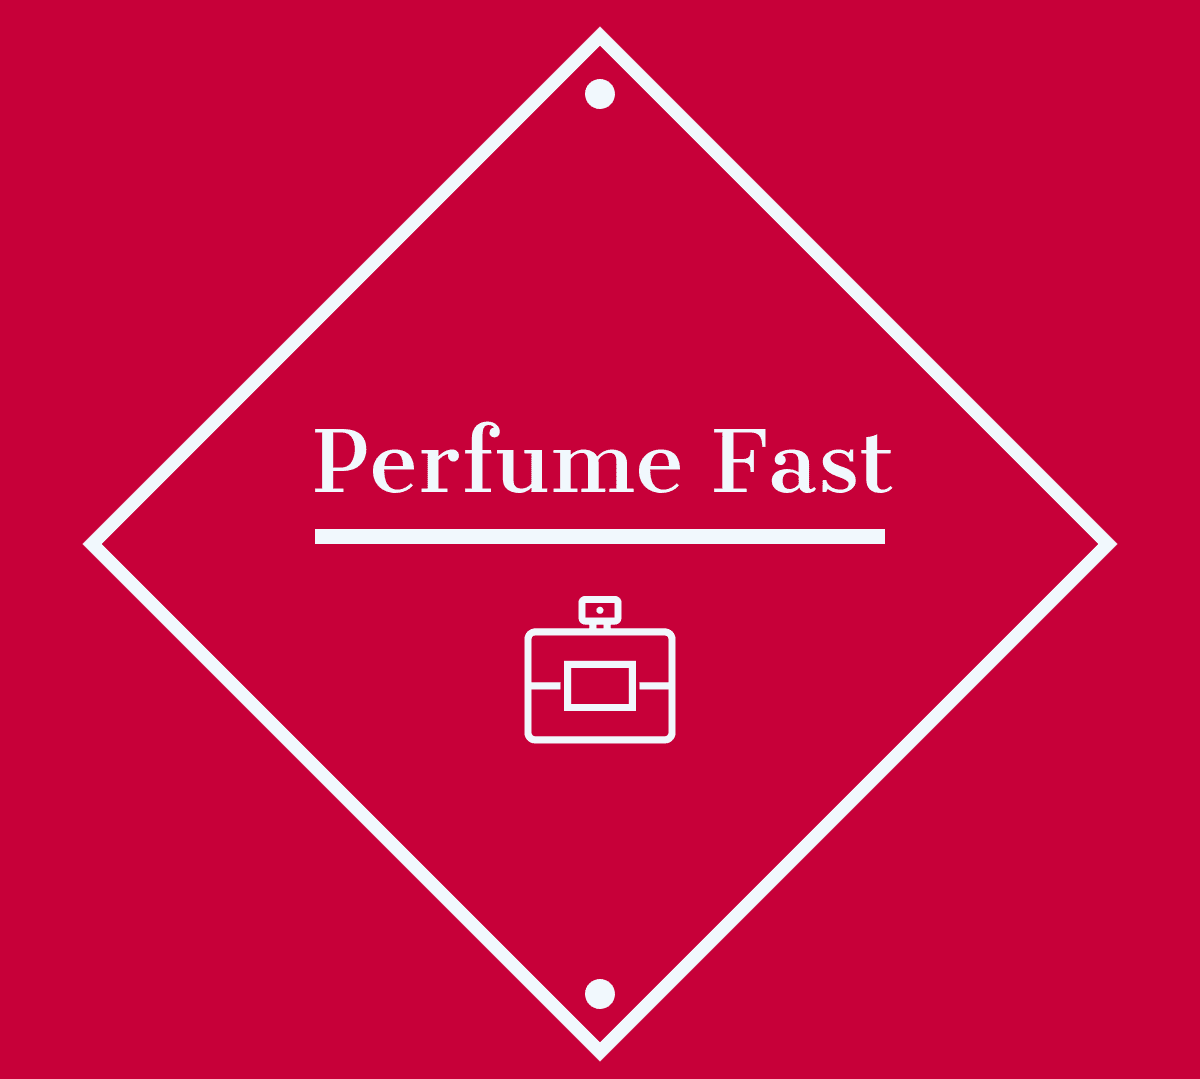 Perfume Fast Fragrances Perfumes Colognes